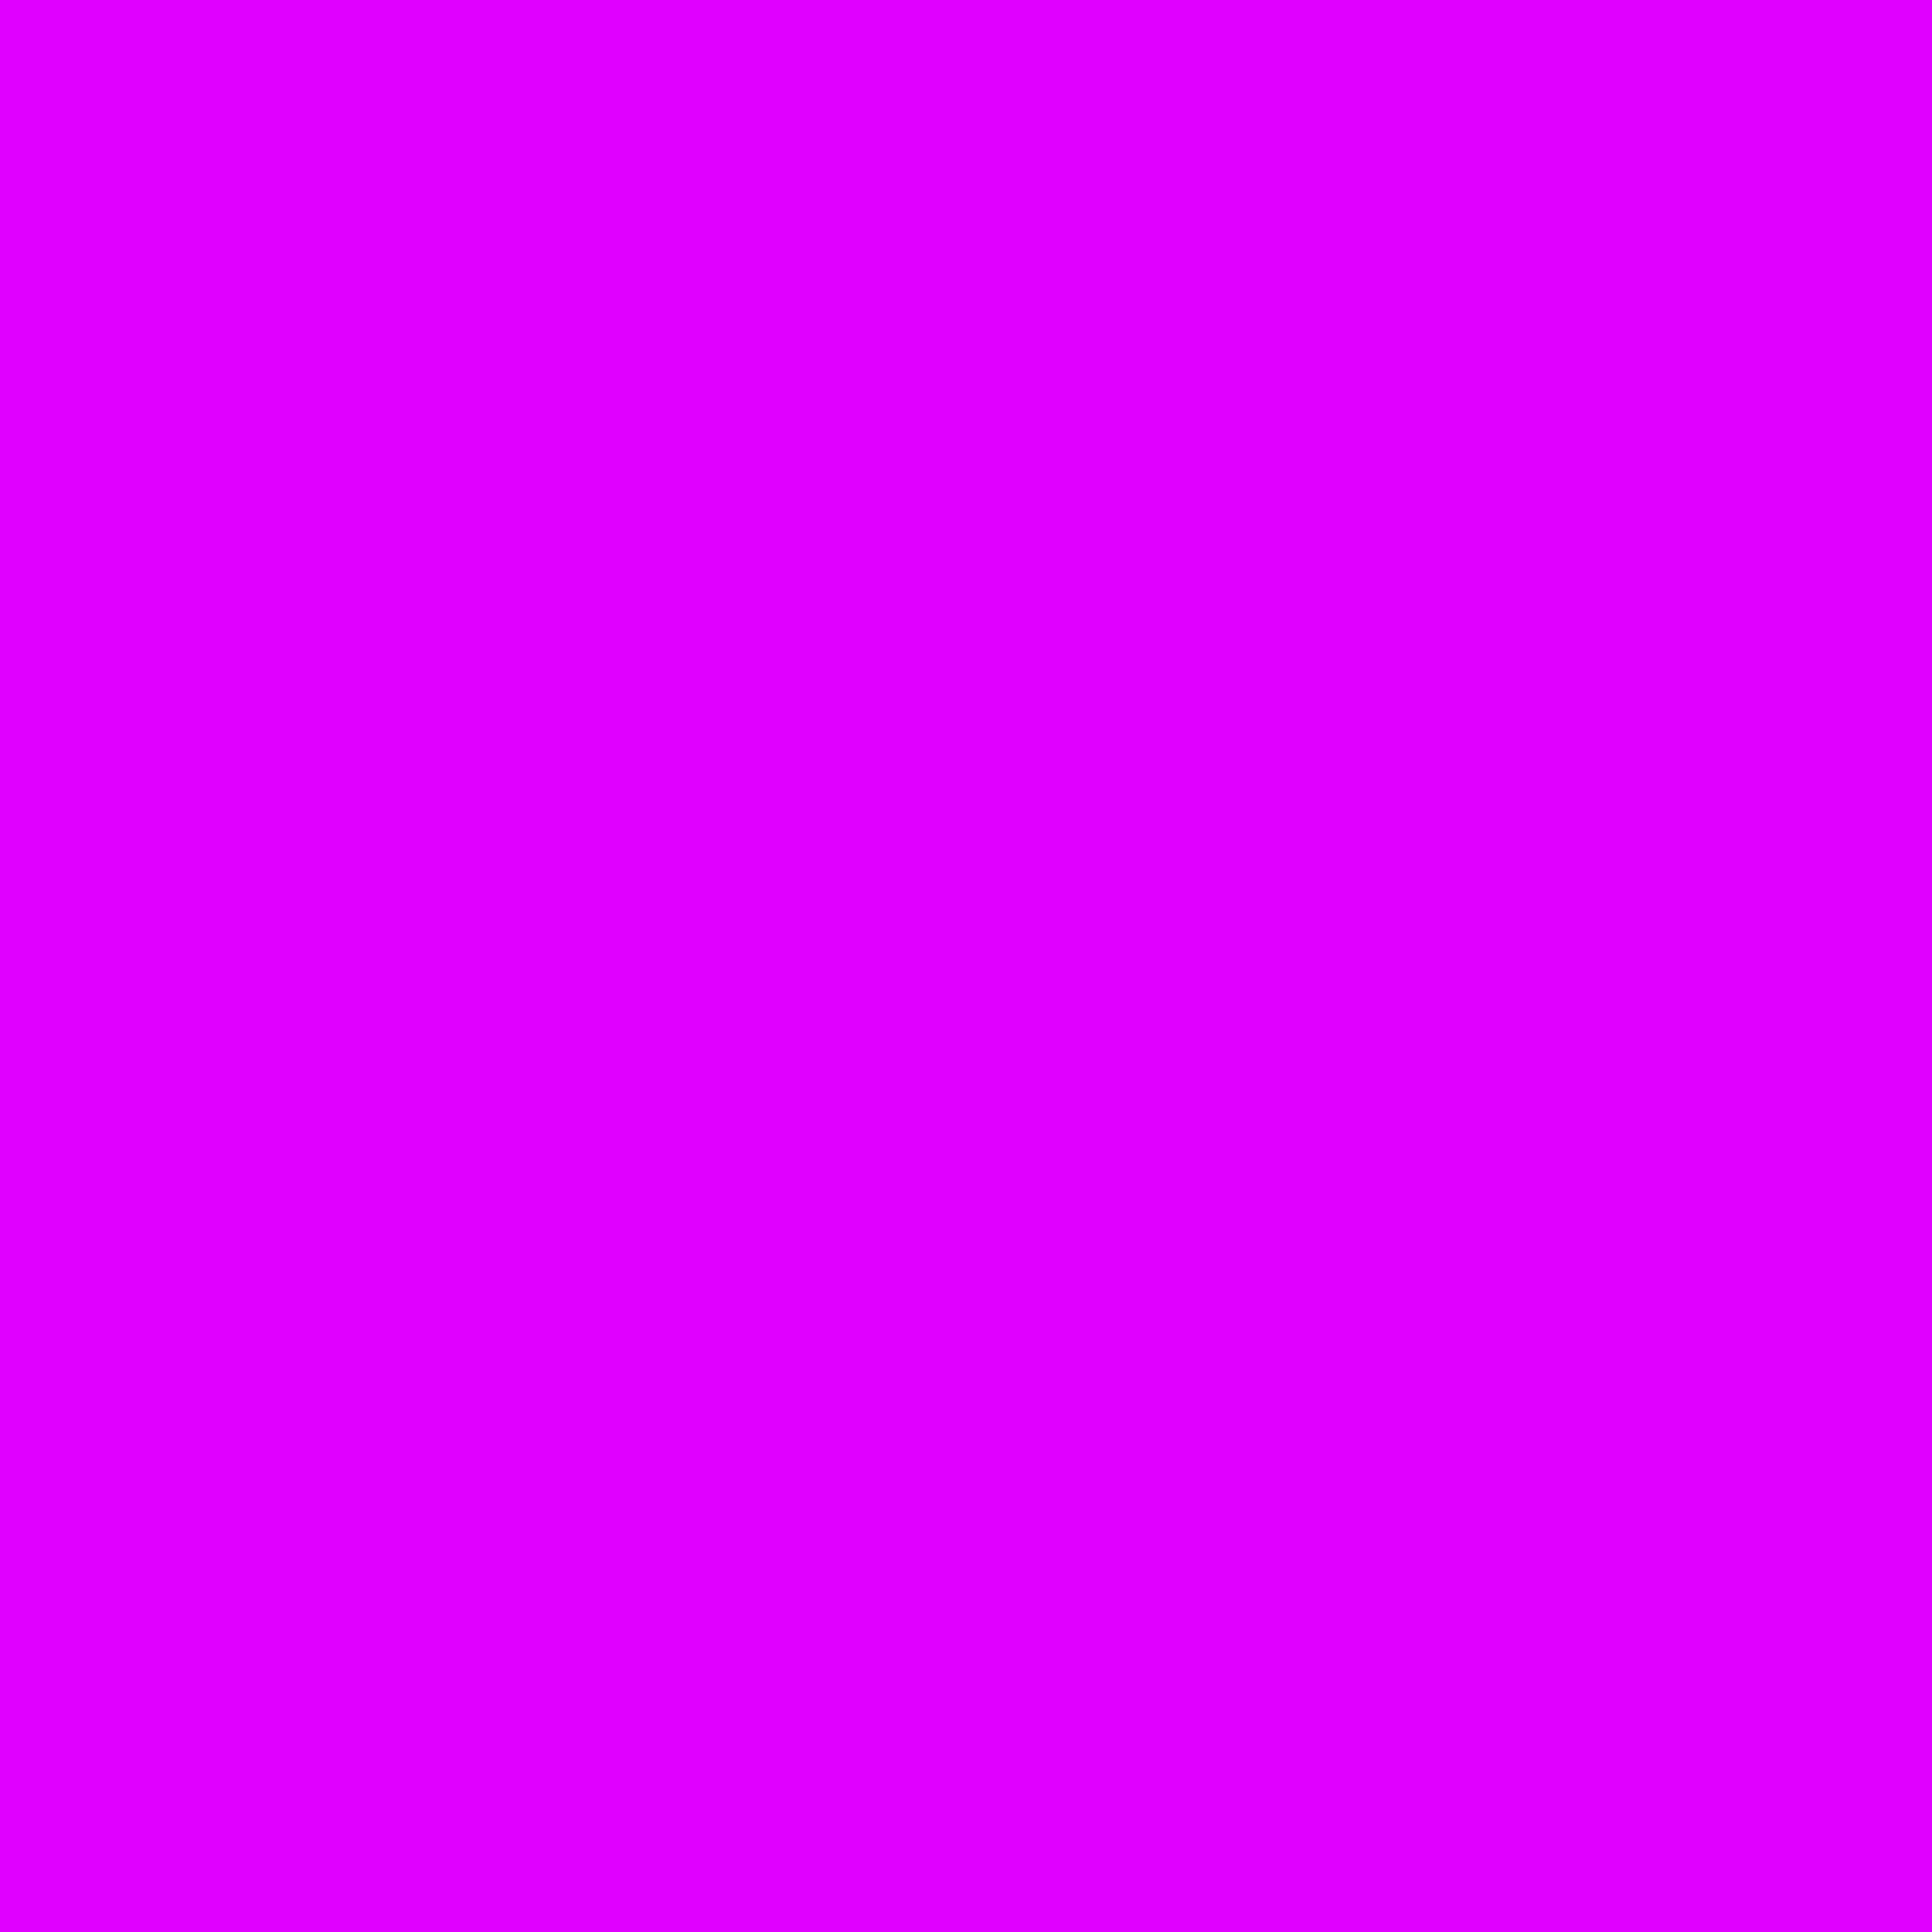 2048x2048 Psychedelic Purple Solid Color Background